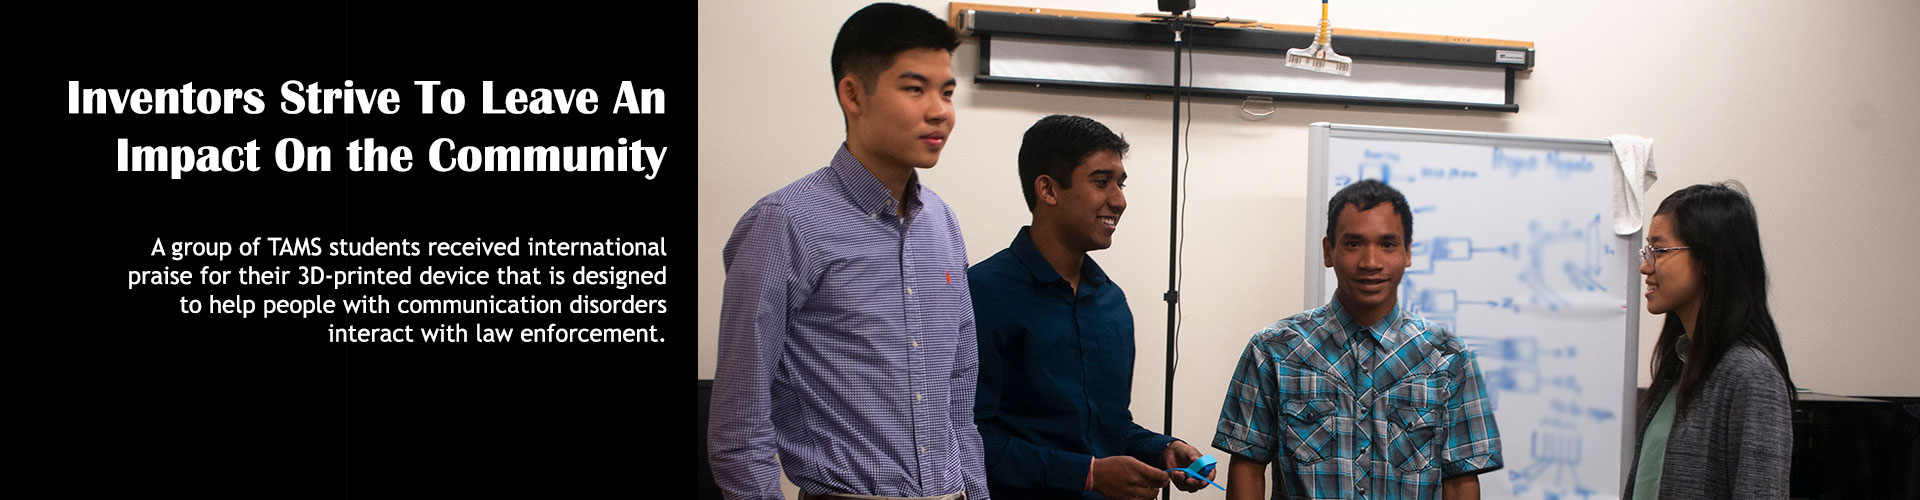 TAMS students develop device to help people with communication disorders